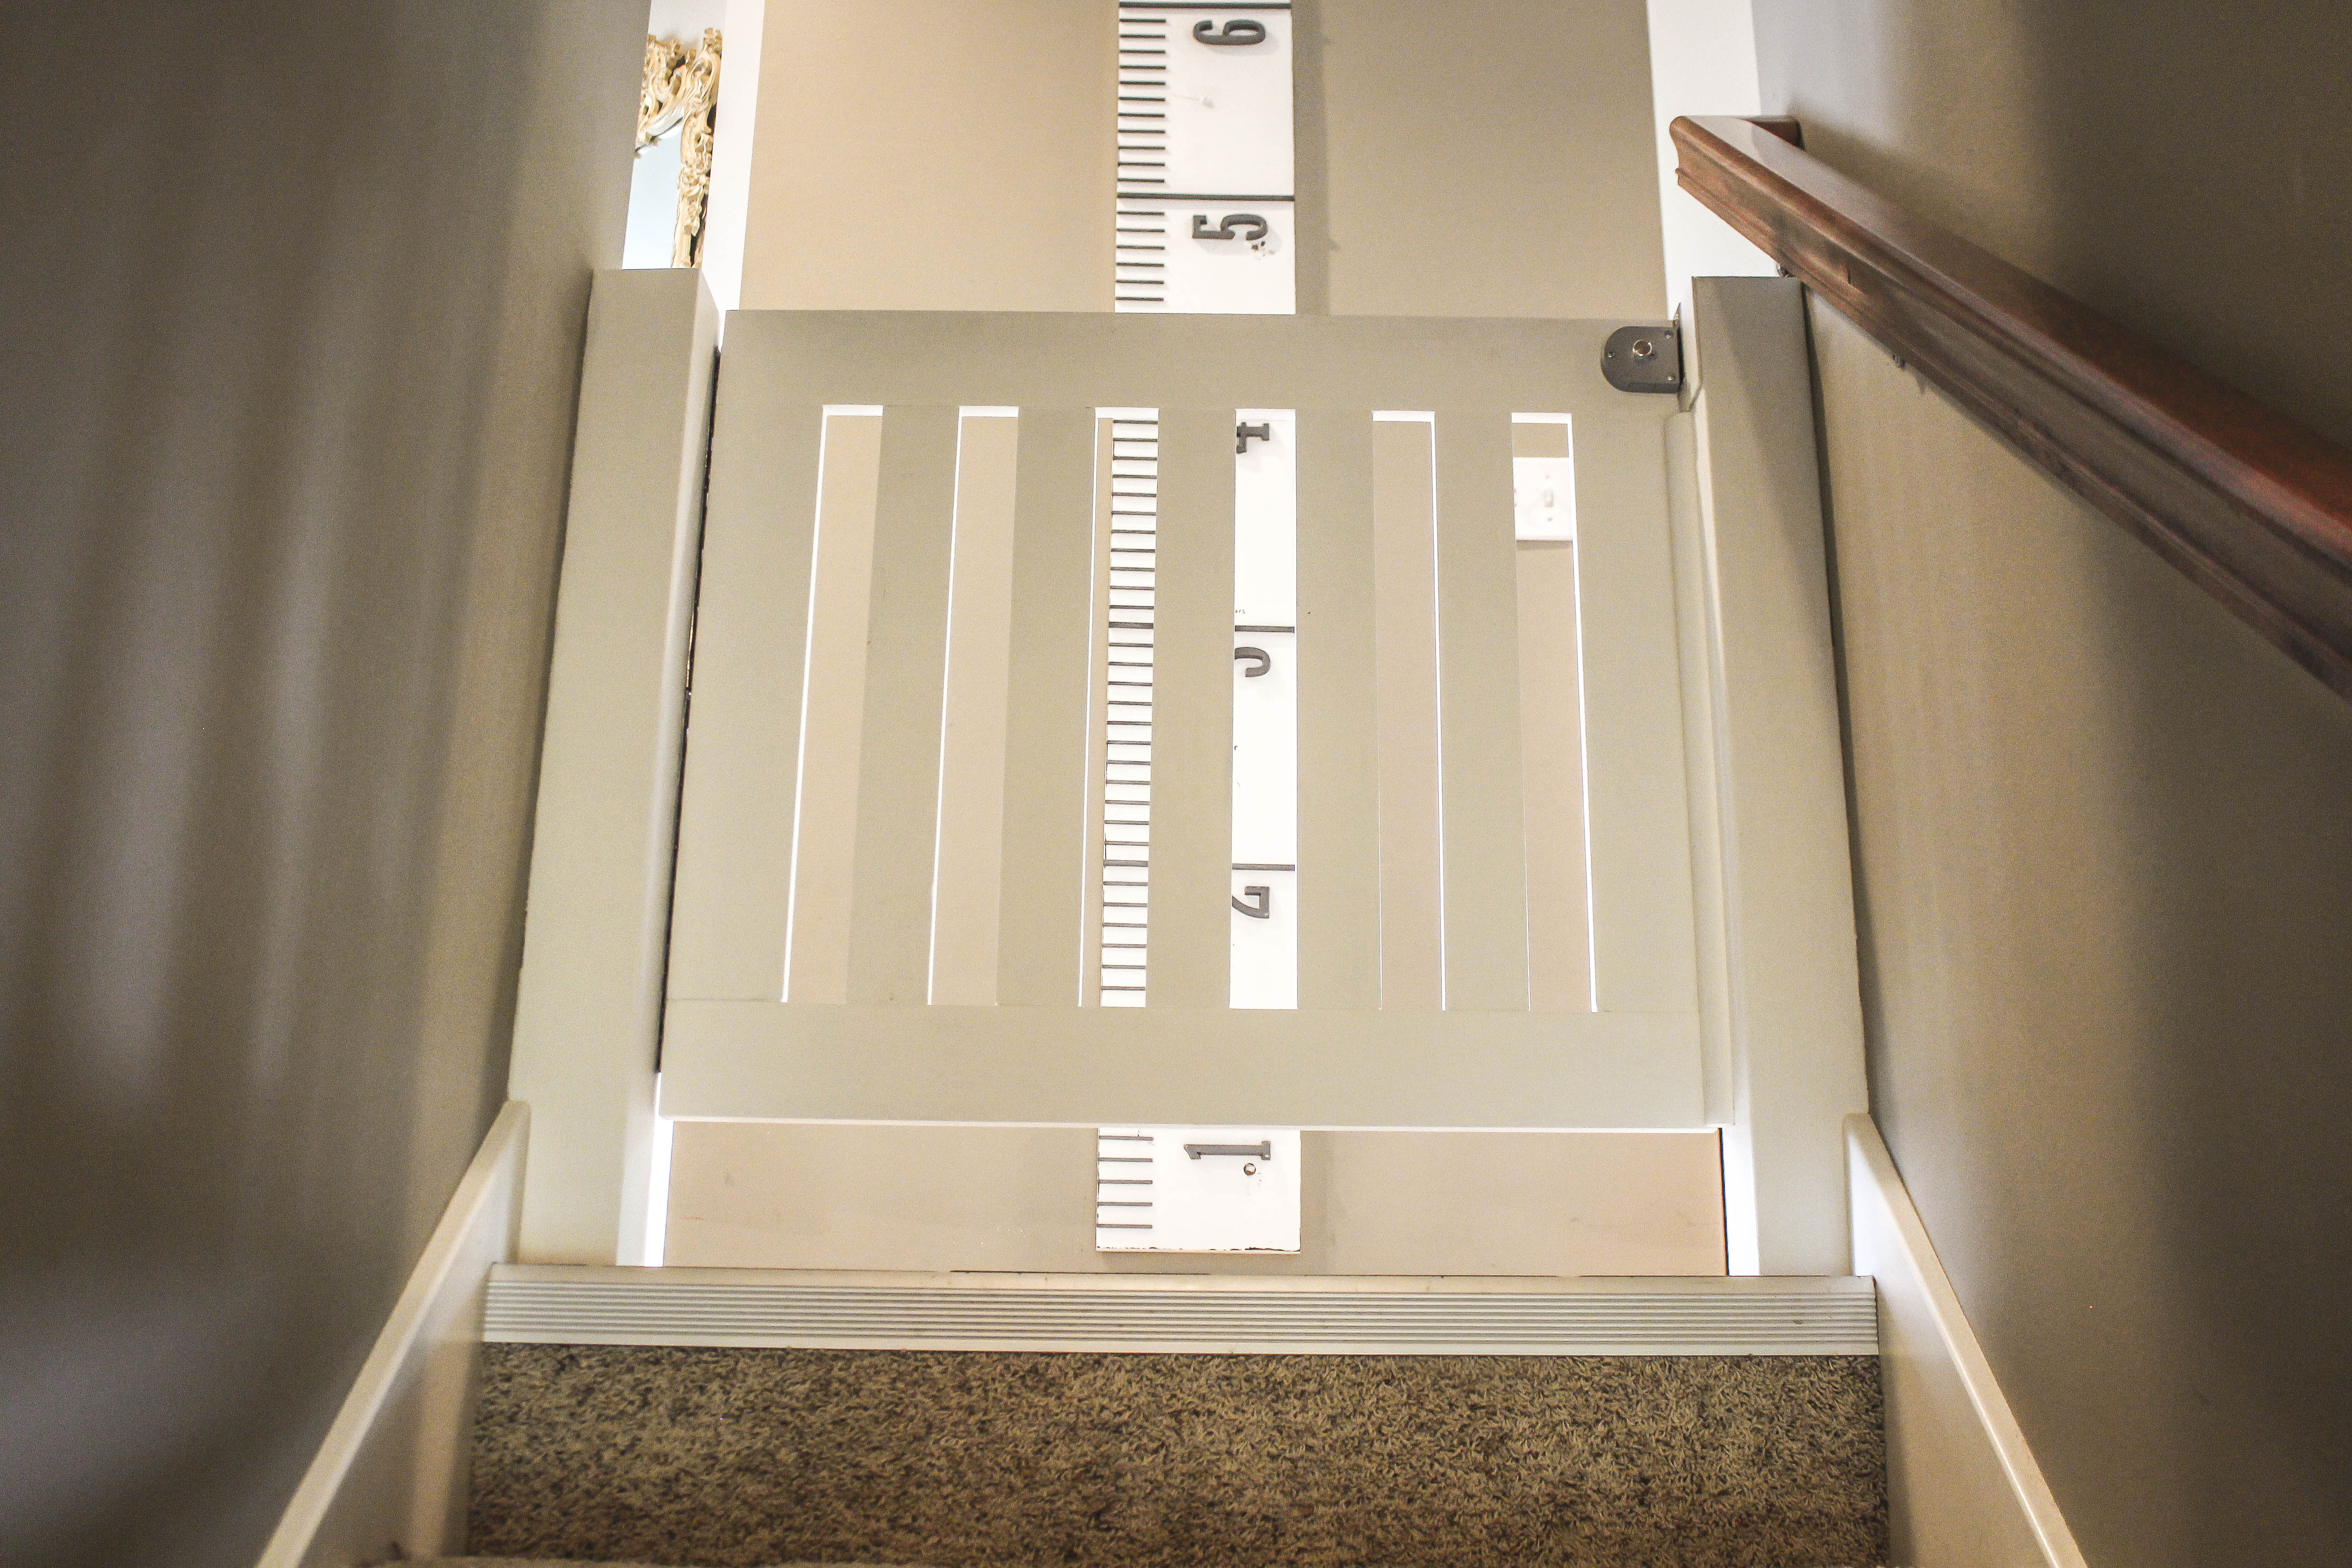 Strike Plate For Baby Gate